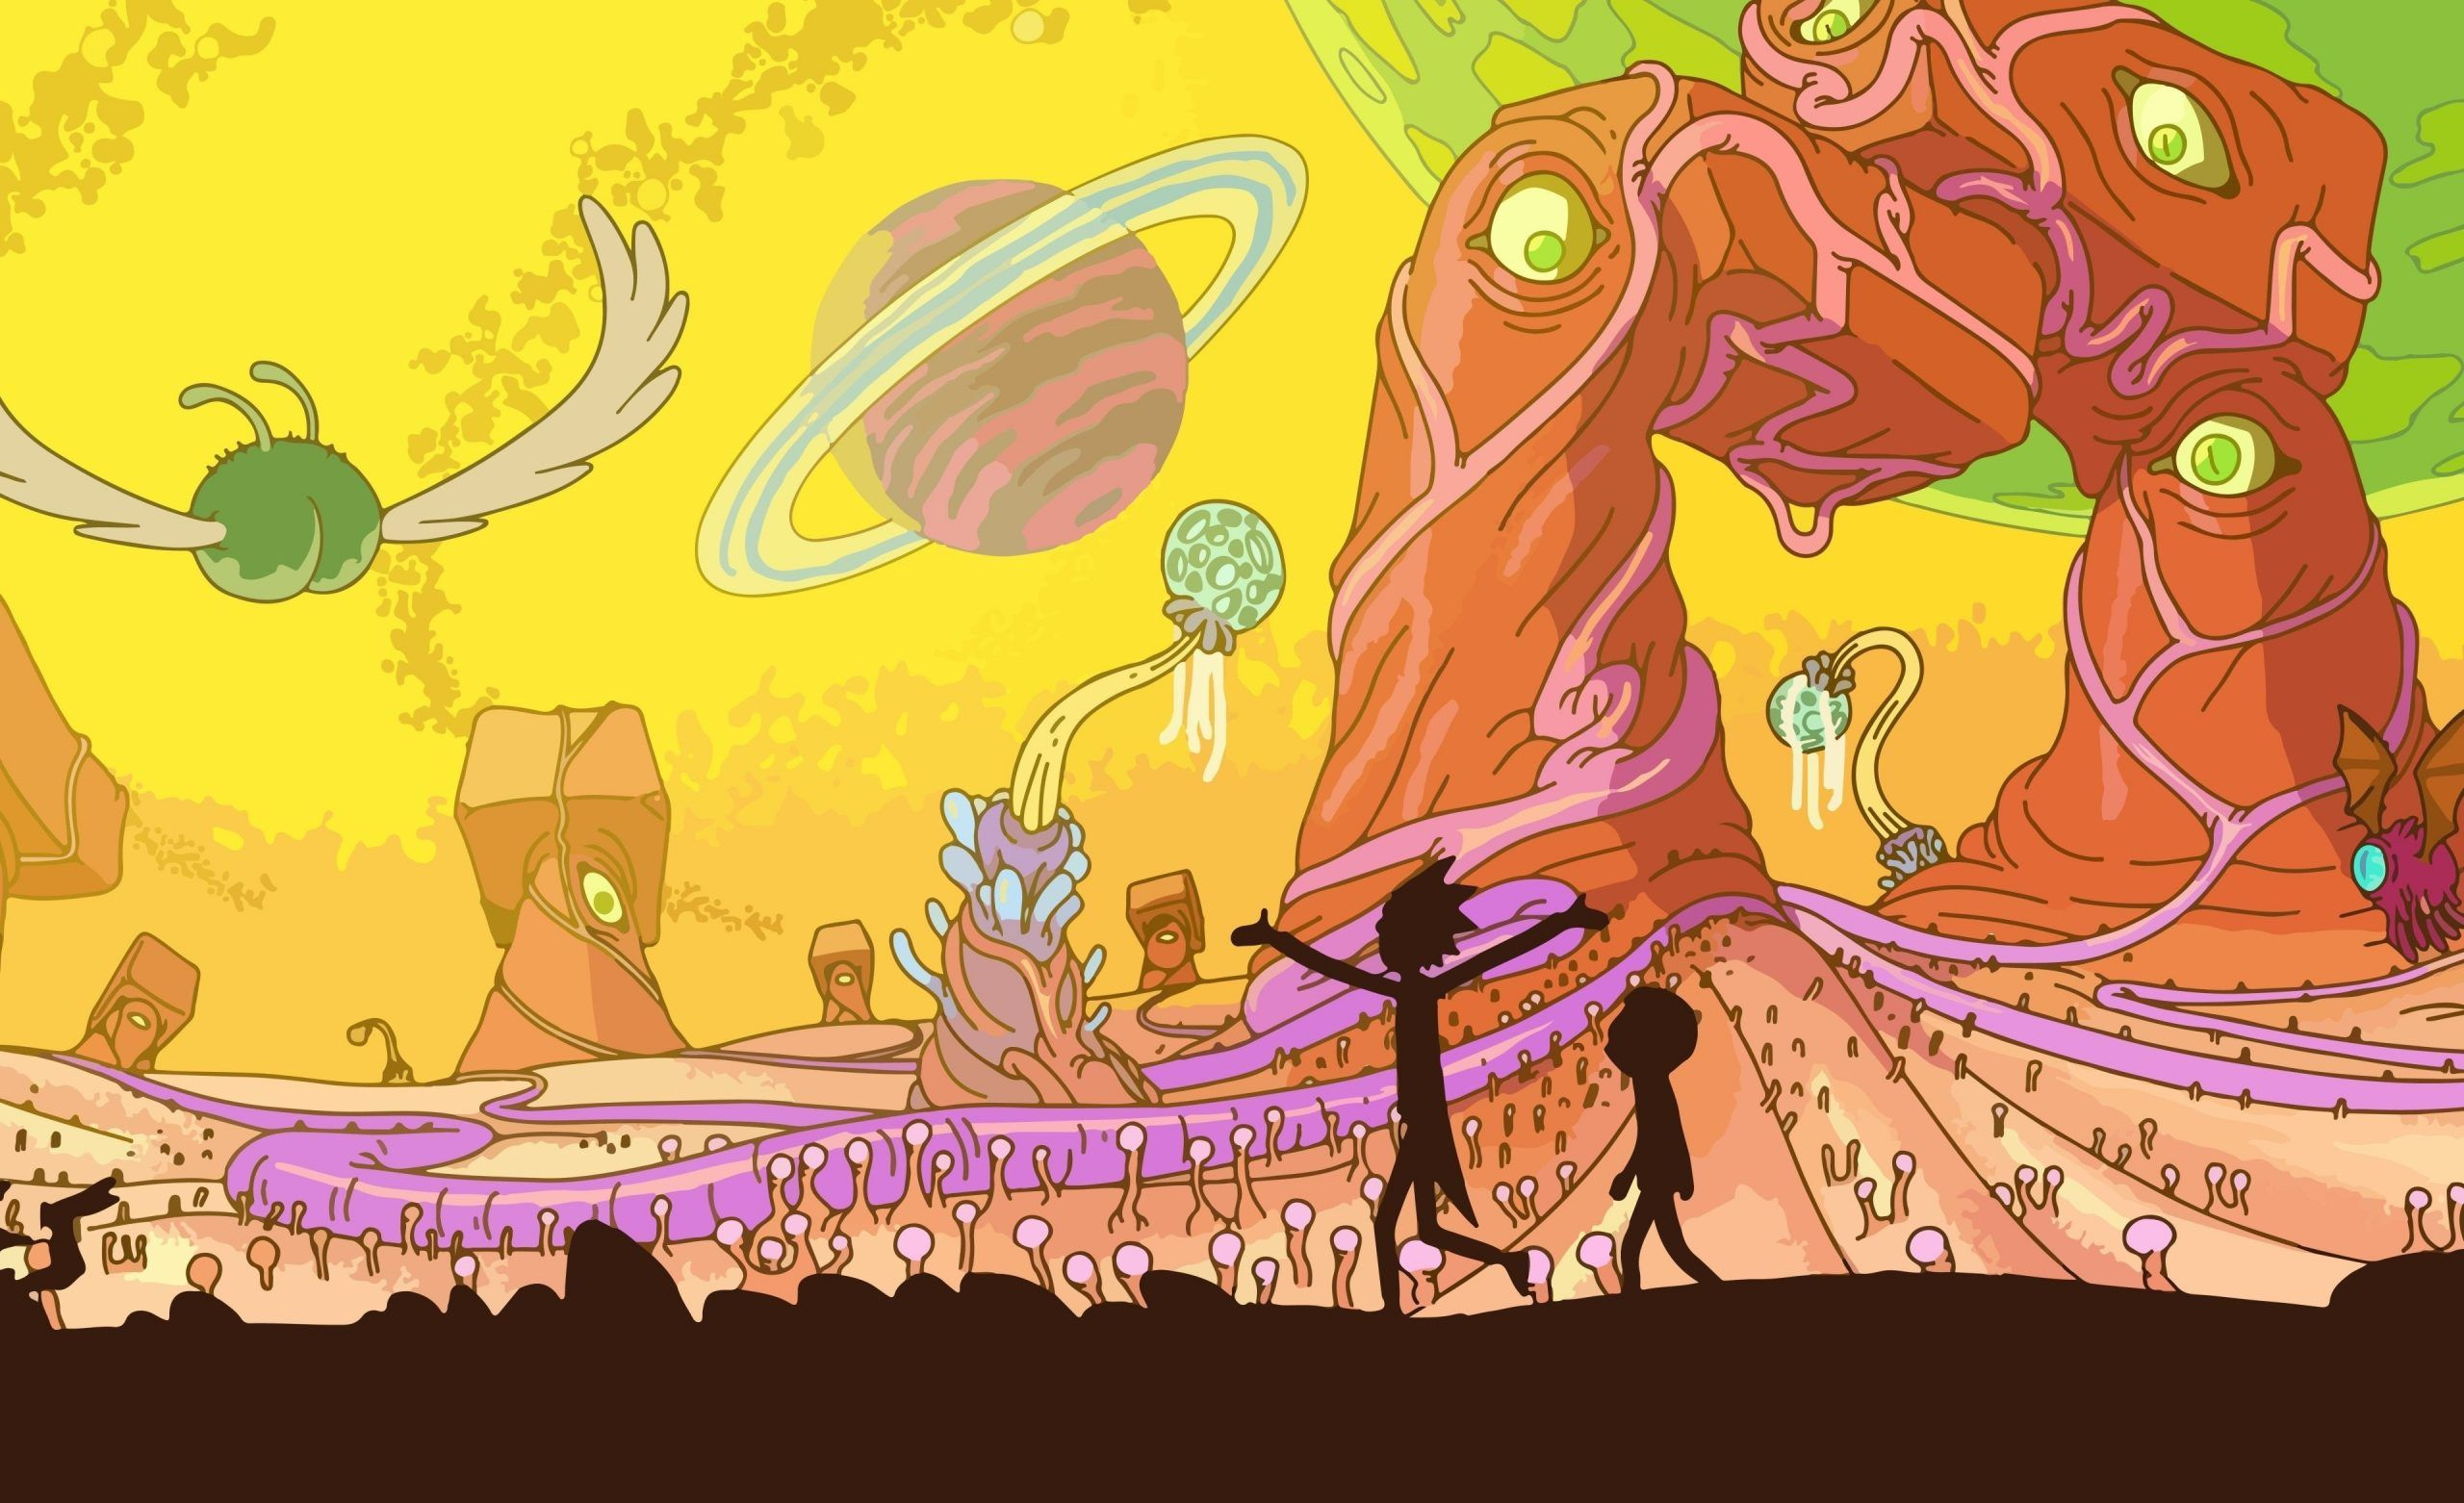 Rick And Morty 4k Wallpapers Wallpaper Cave Within Rick And Morty Wallpaper Macbook Pro Rick And Morty Poster Cartoon Wallpaper Rick And Morty Season